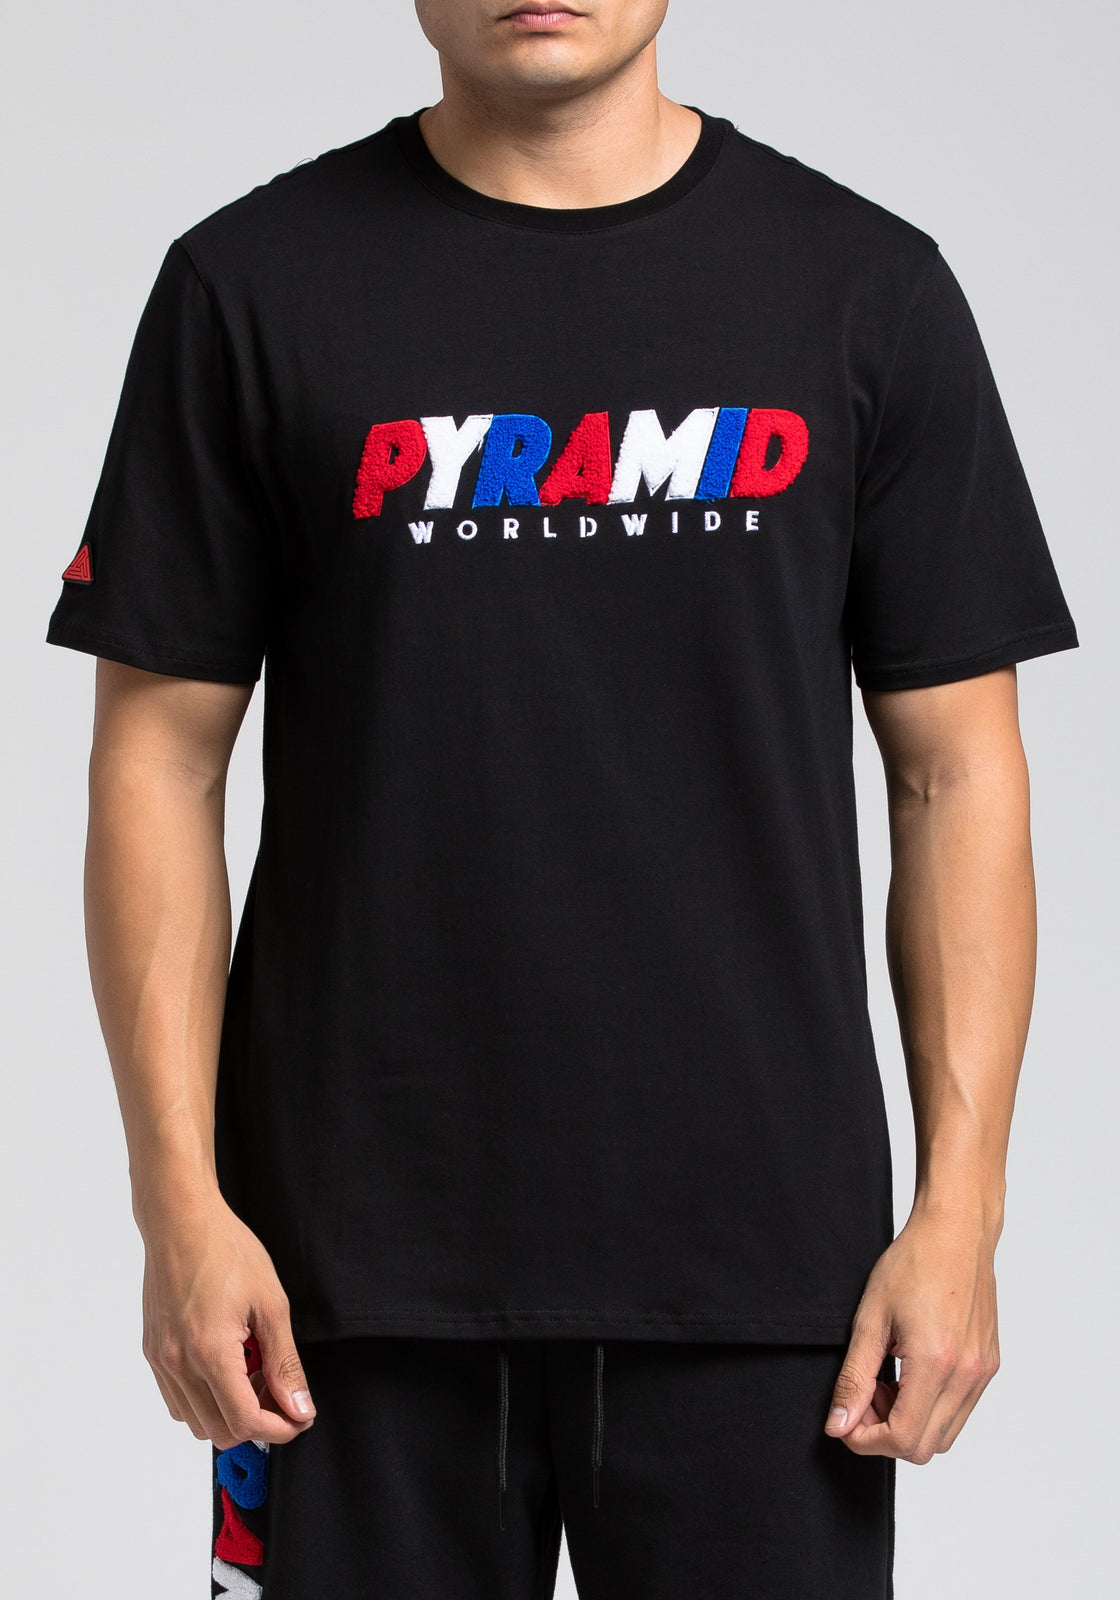 Pyramid Worldwide Tee - Color: Black